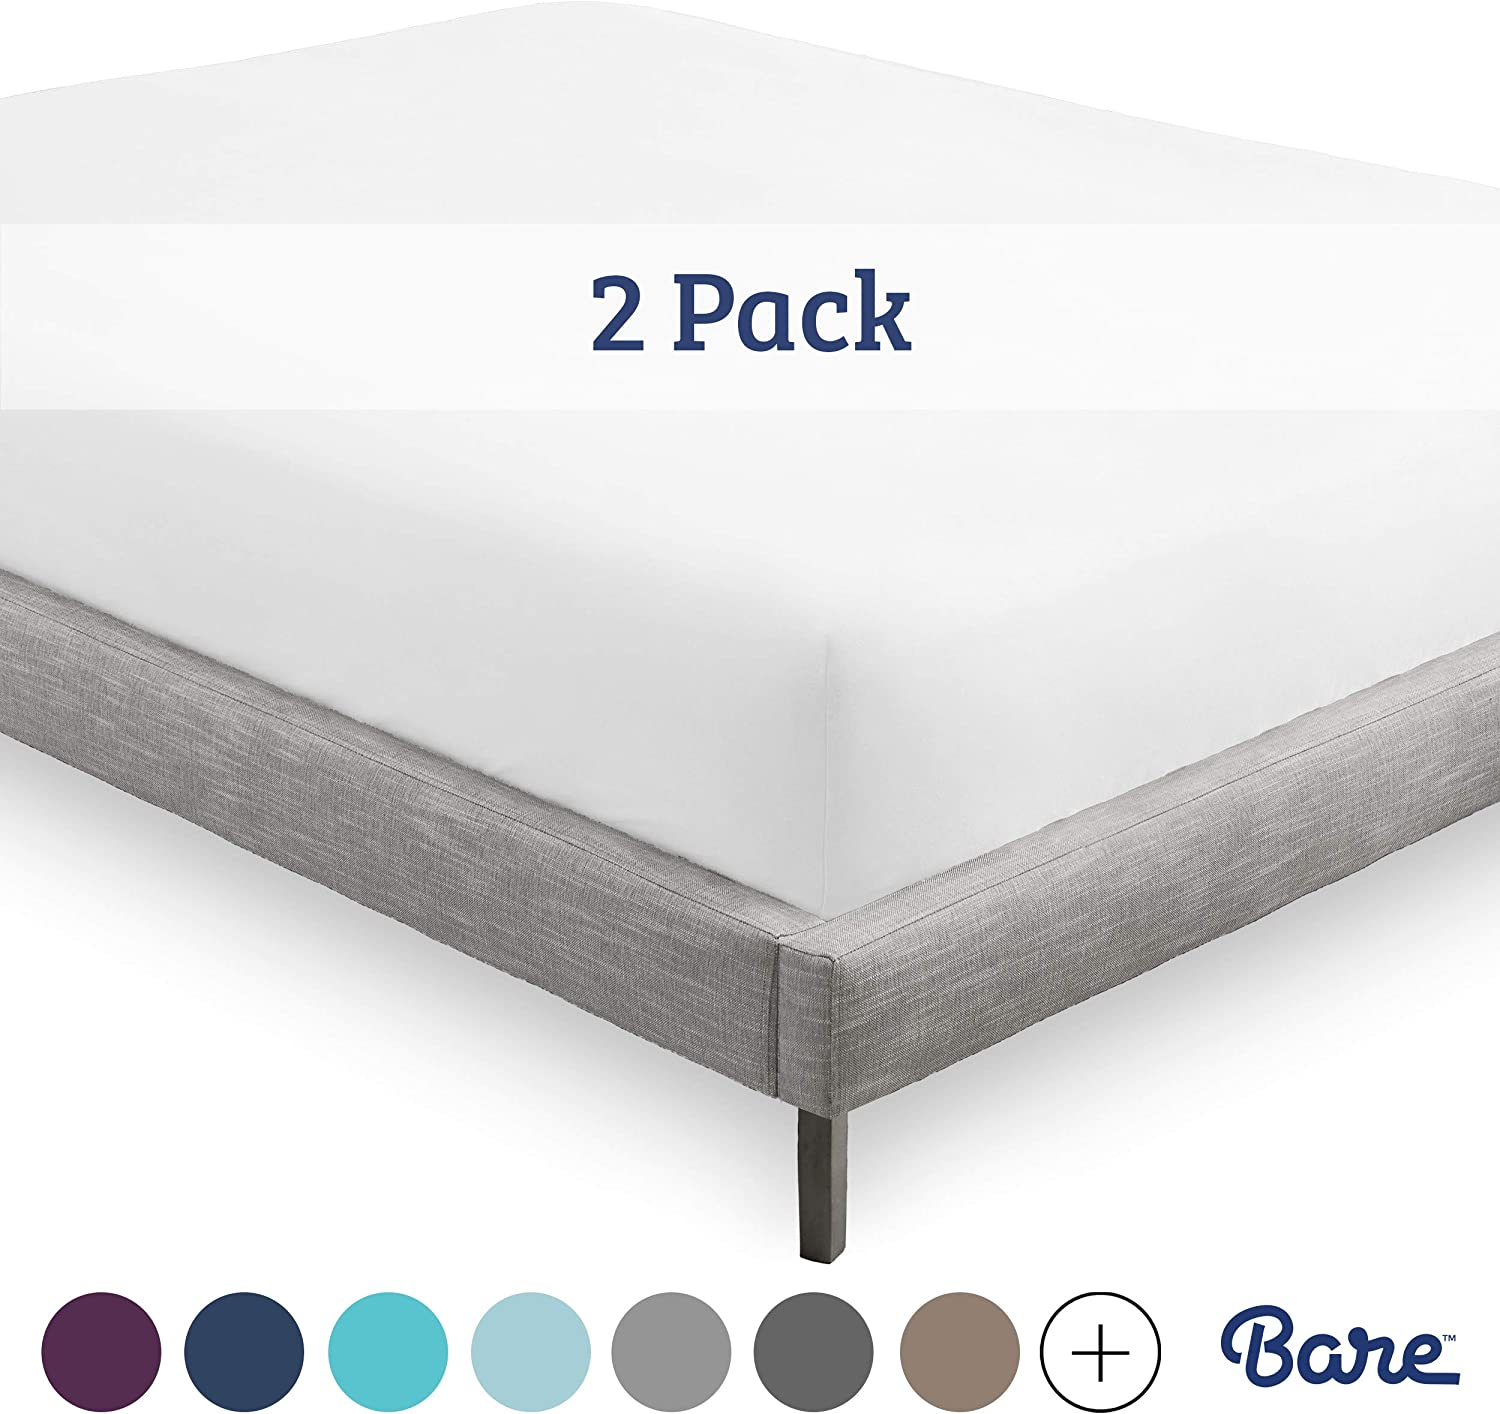 Bare Home 2-Pack Kids Fitted Bottom Sheets Twin - Premium 1800 Ultra-Soft Wrinkle Resistant Microfiber - Hypoallergenic - Deep Pocket (Twin, White)